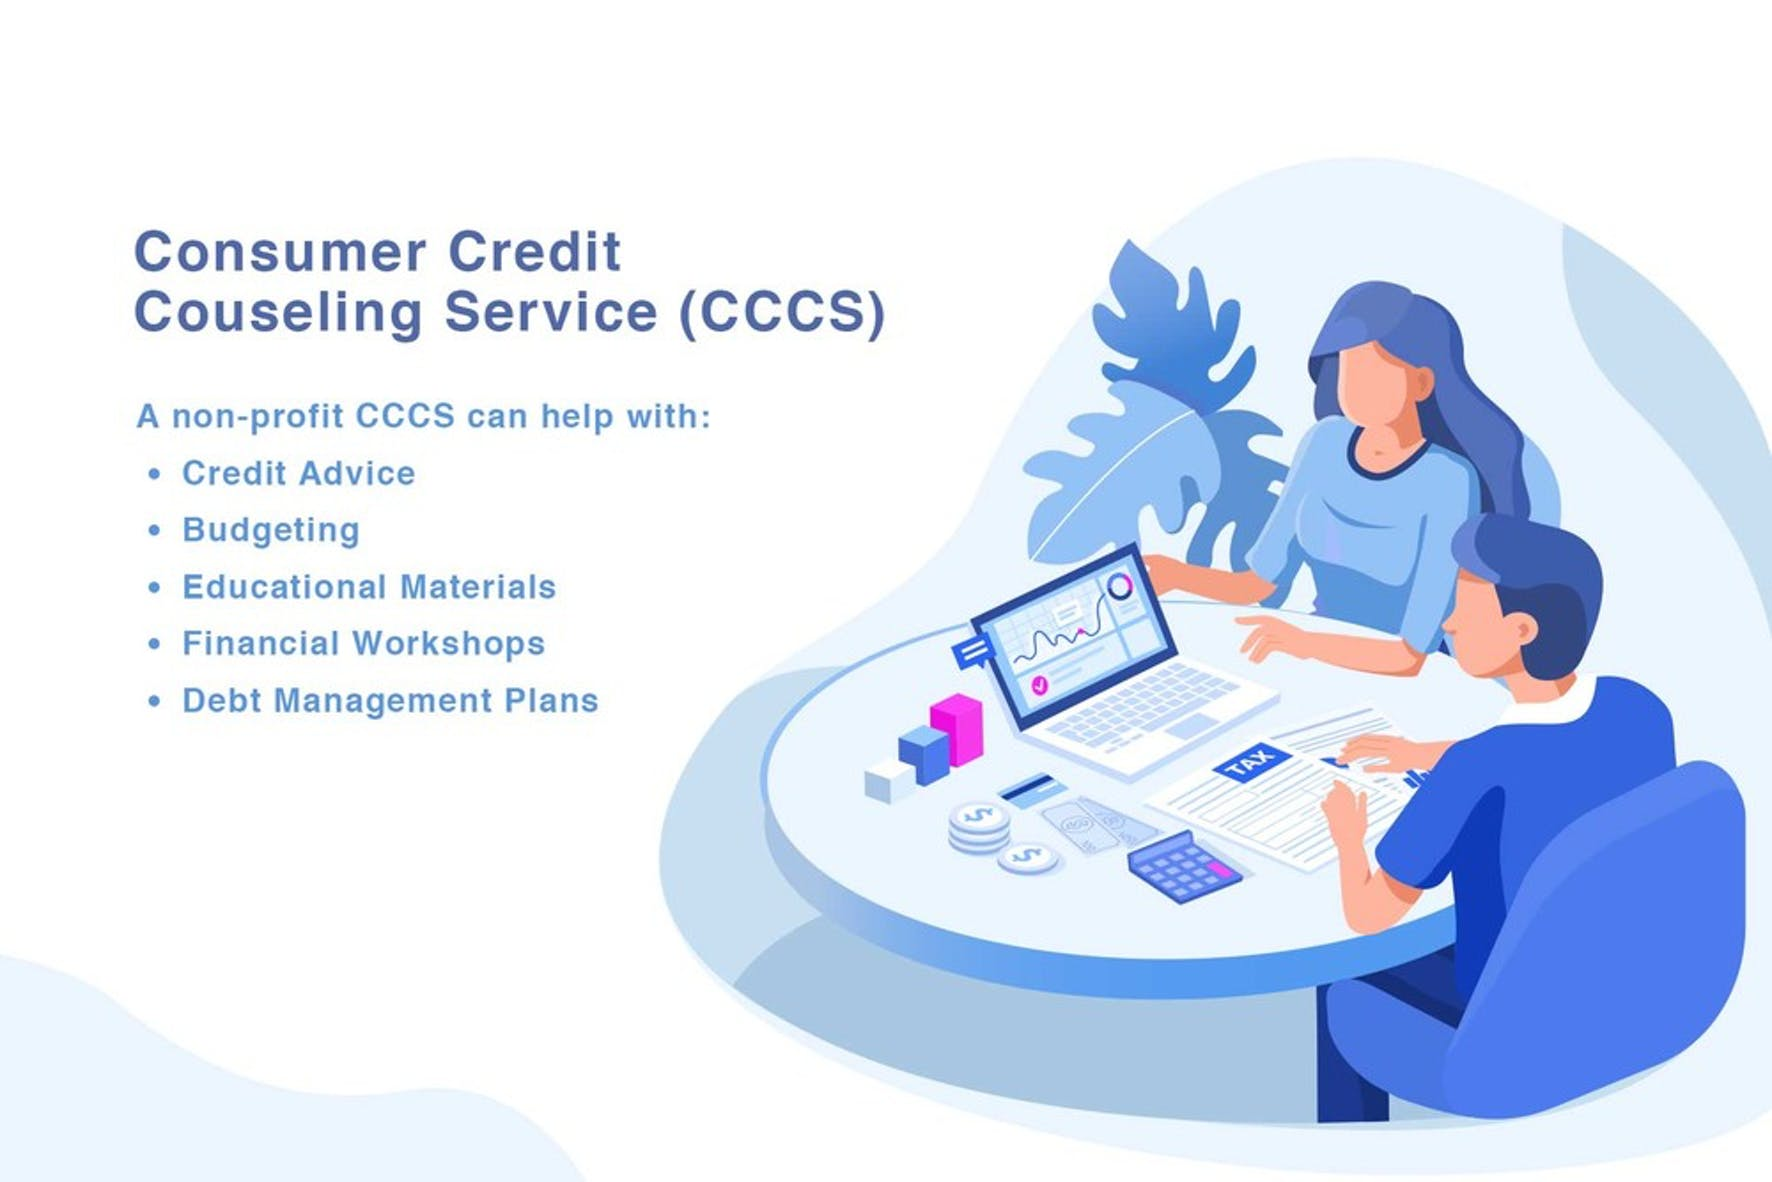 Consumer credit counseling service (CCCS)